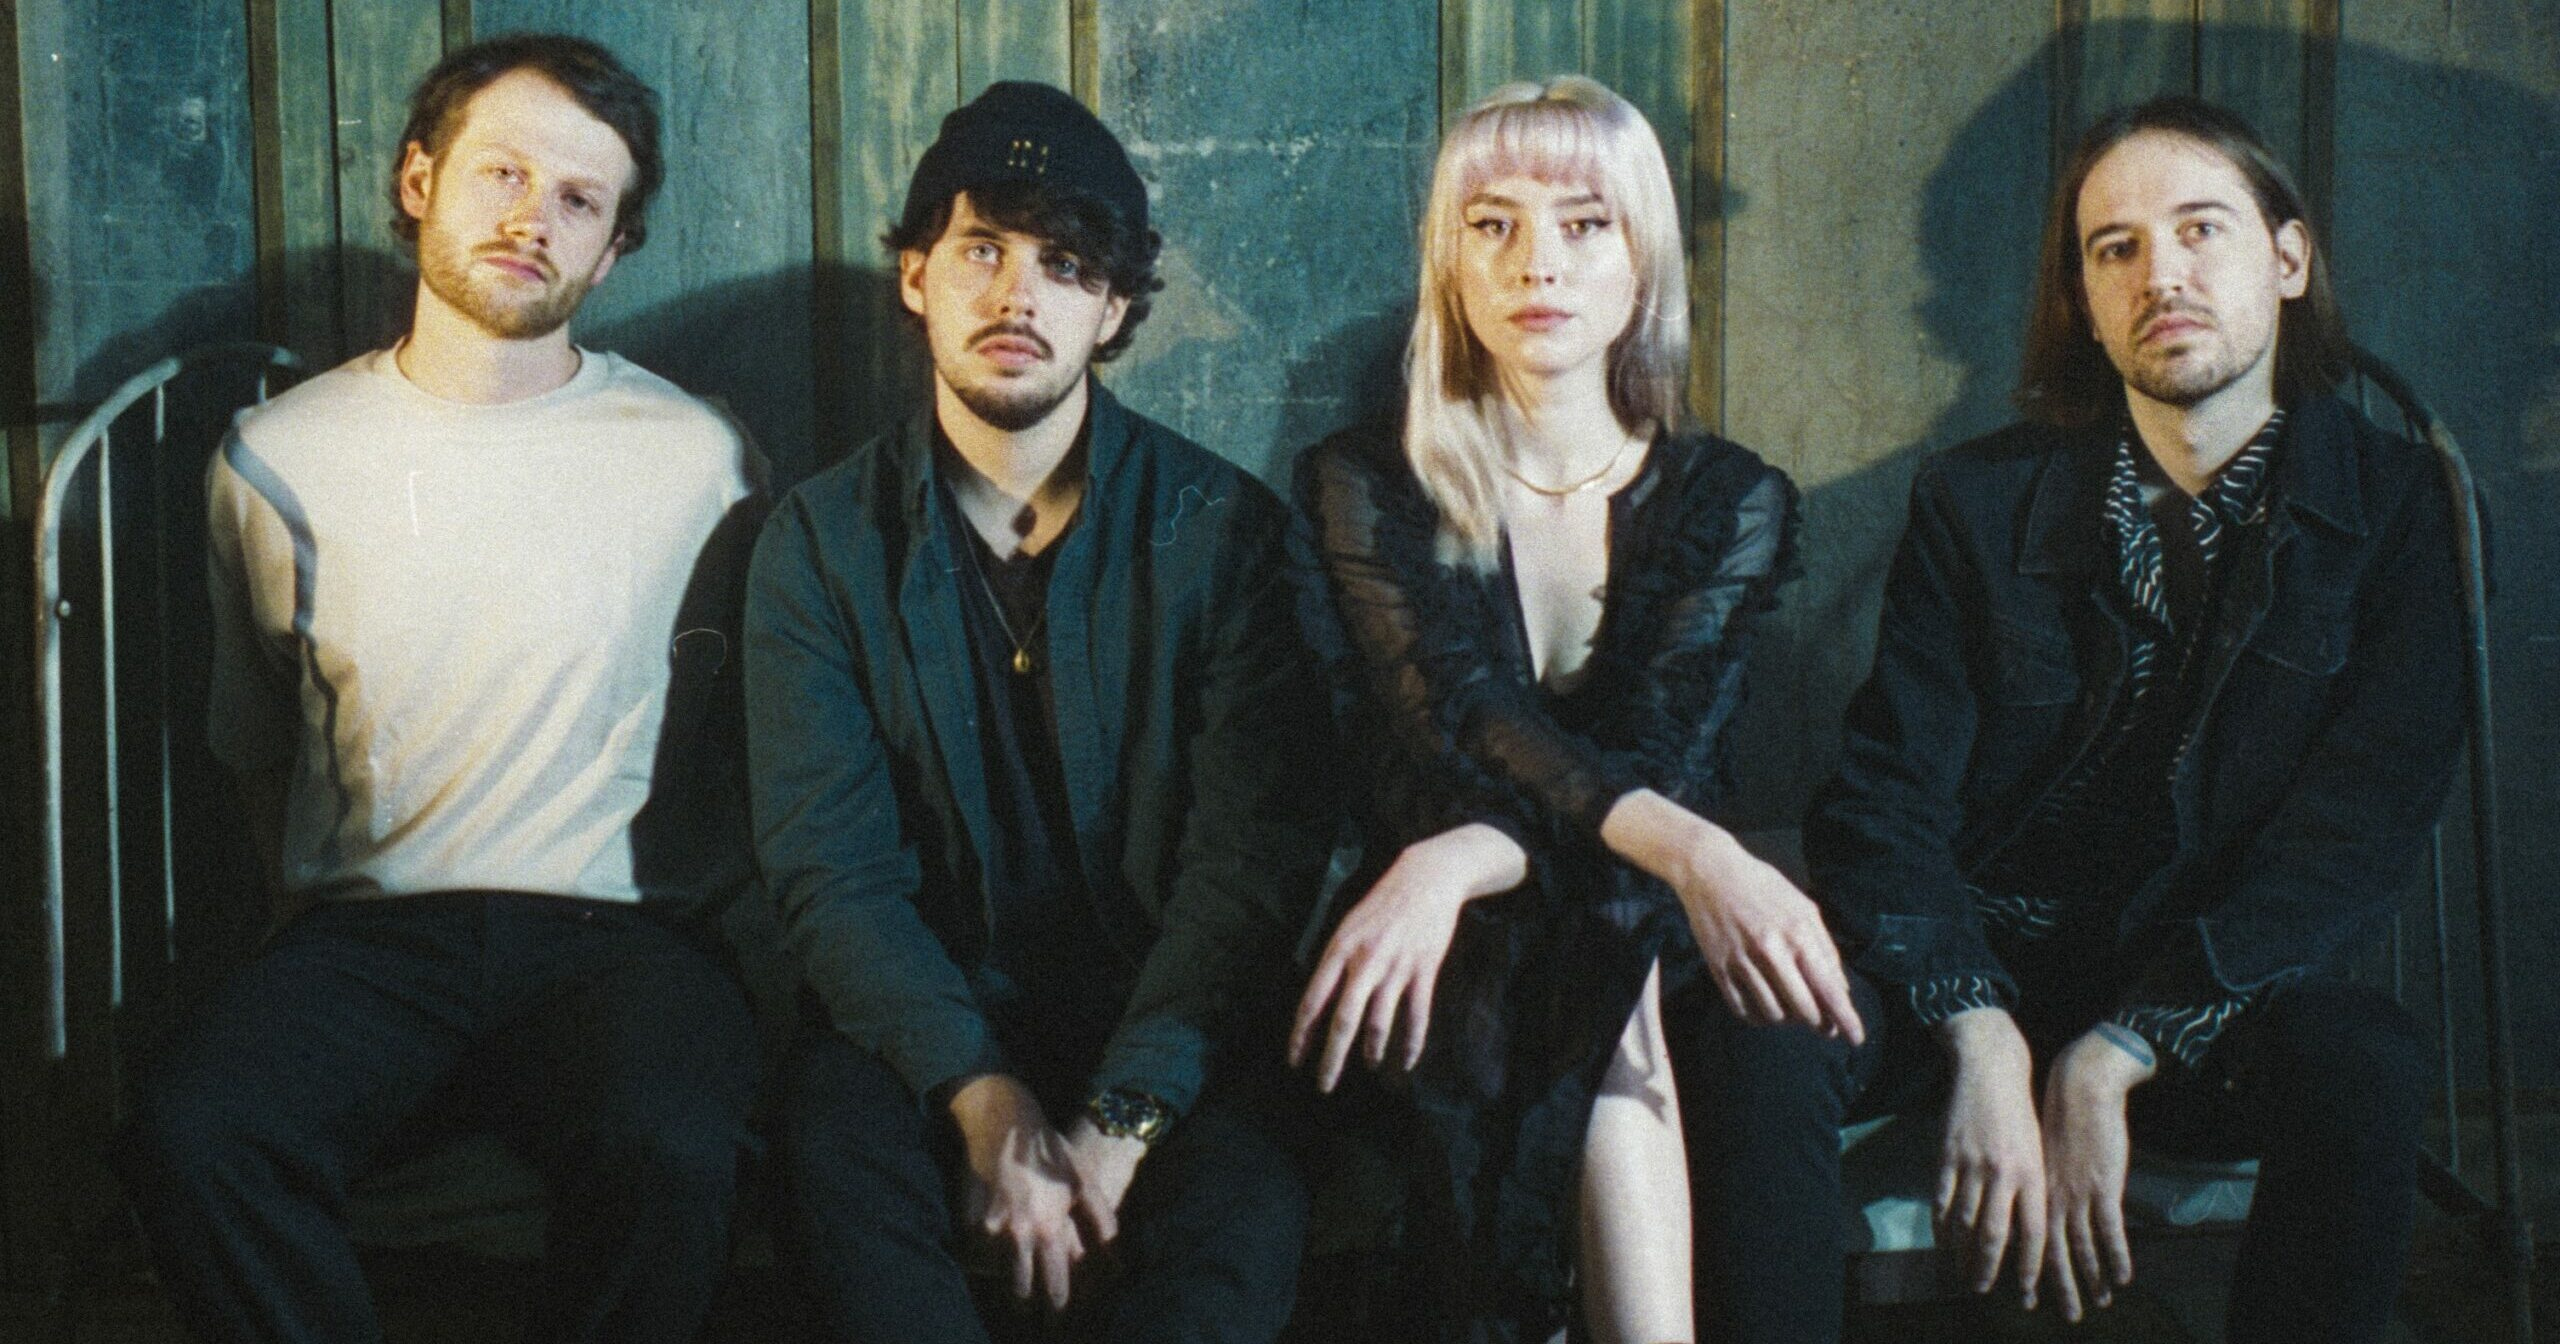 Bleach Lab Share Video for New Single 'Real Thing', Announce UK Tour